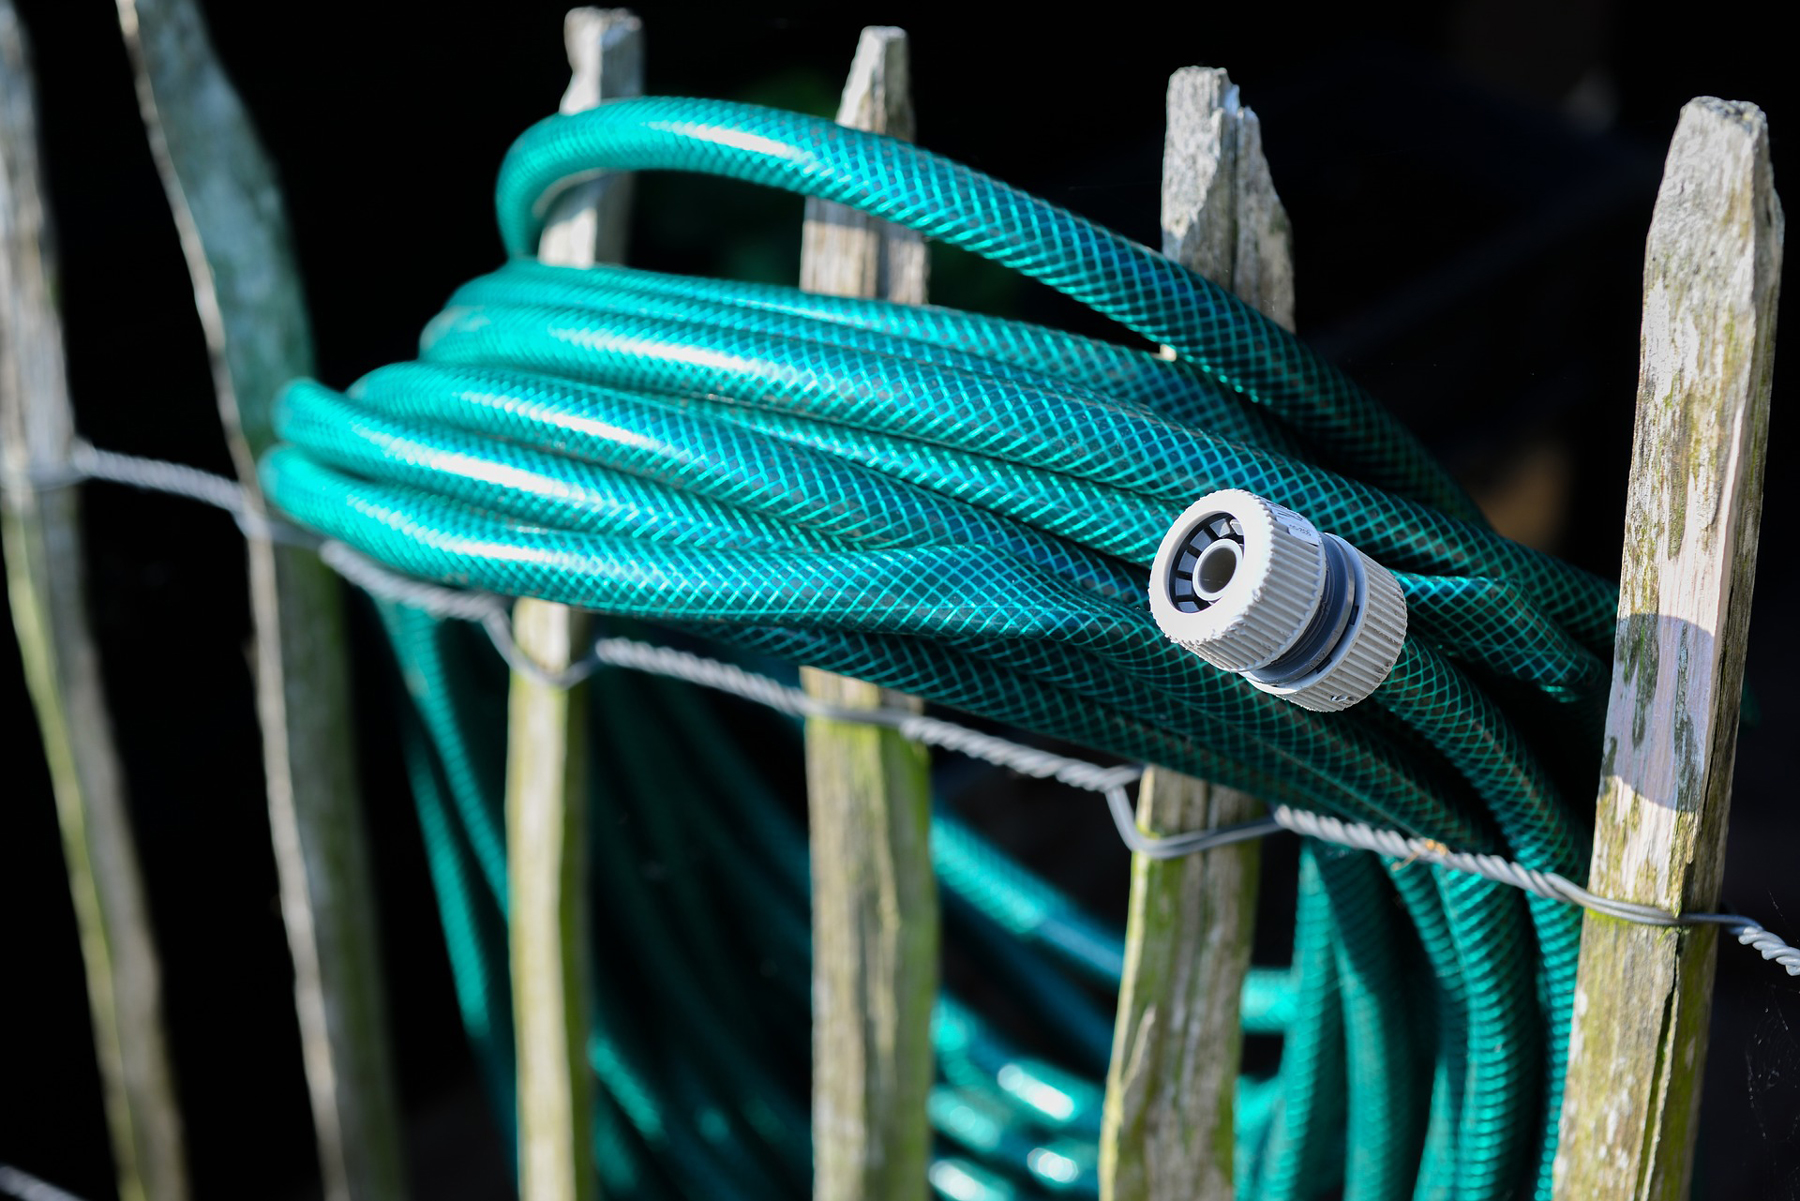 Winterizing your garden hose